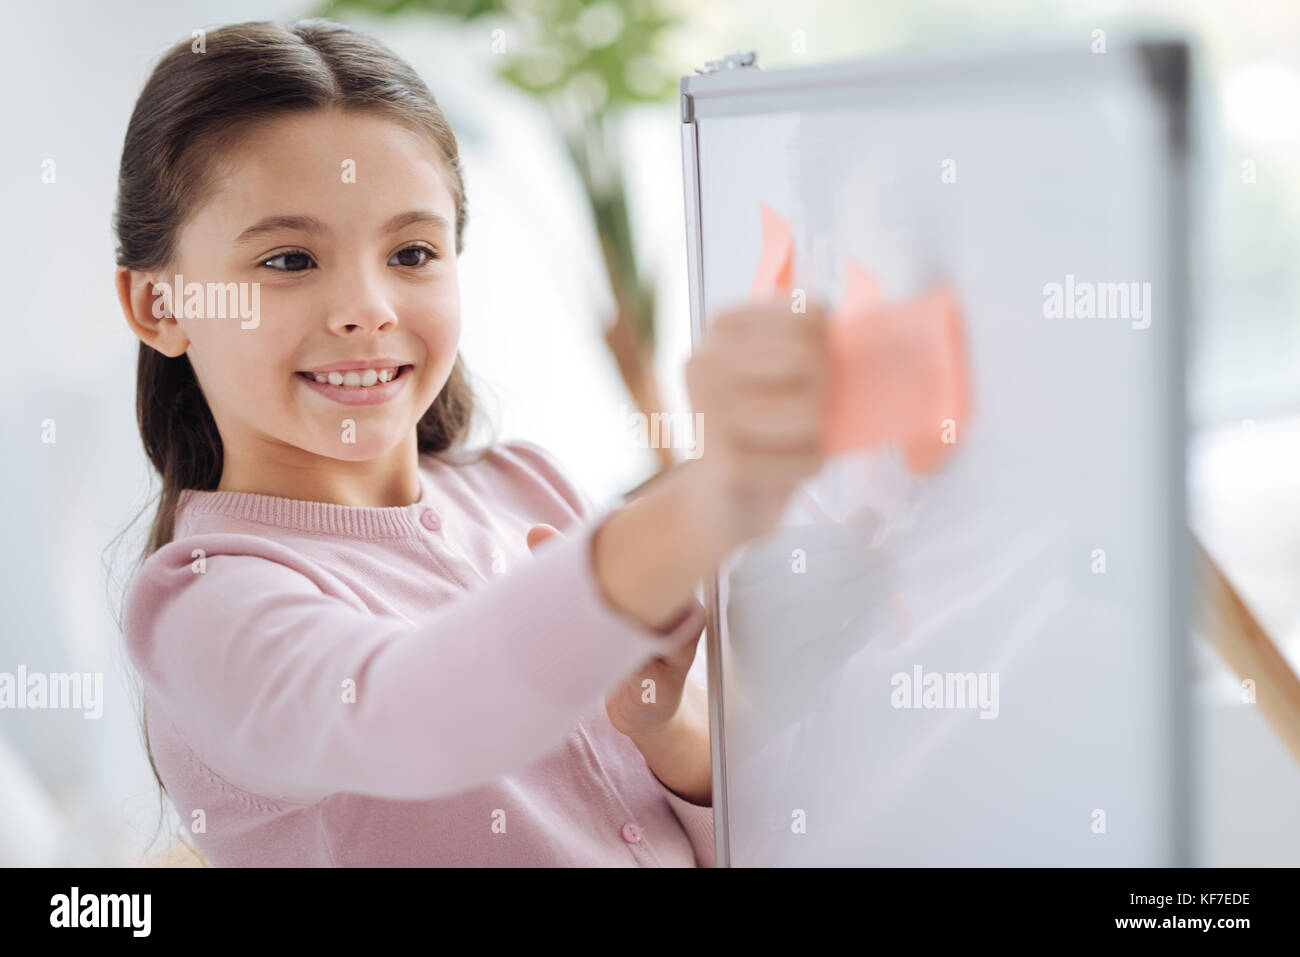 Happy cheerful girl holding a sticky note - Stock Image